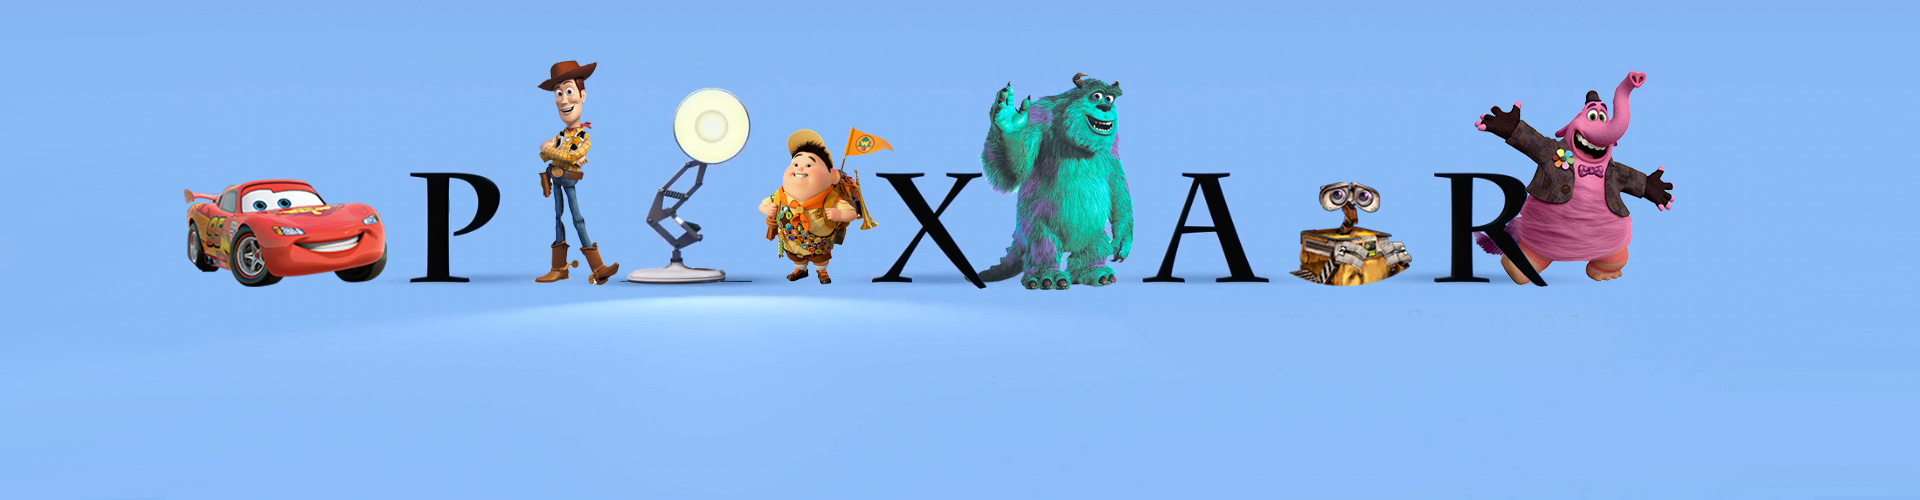 Pixar by numbers